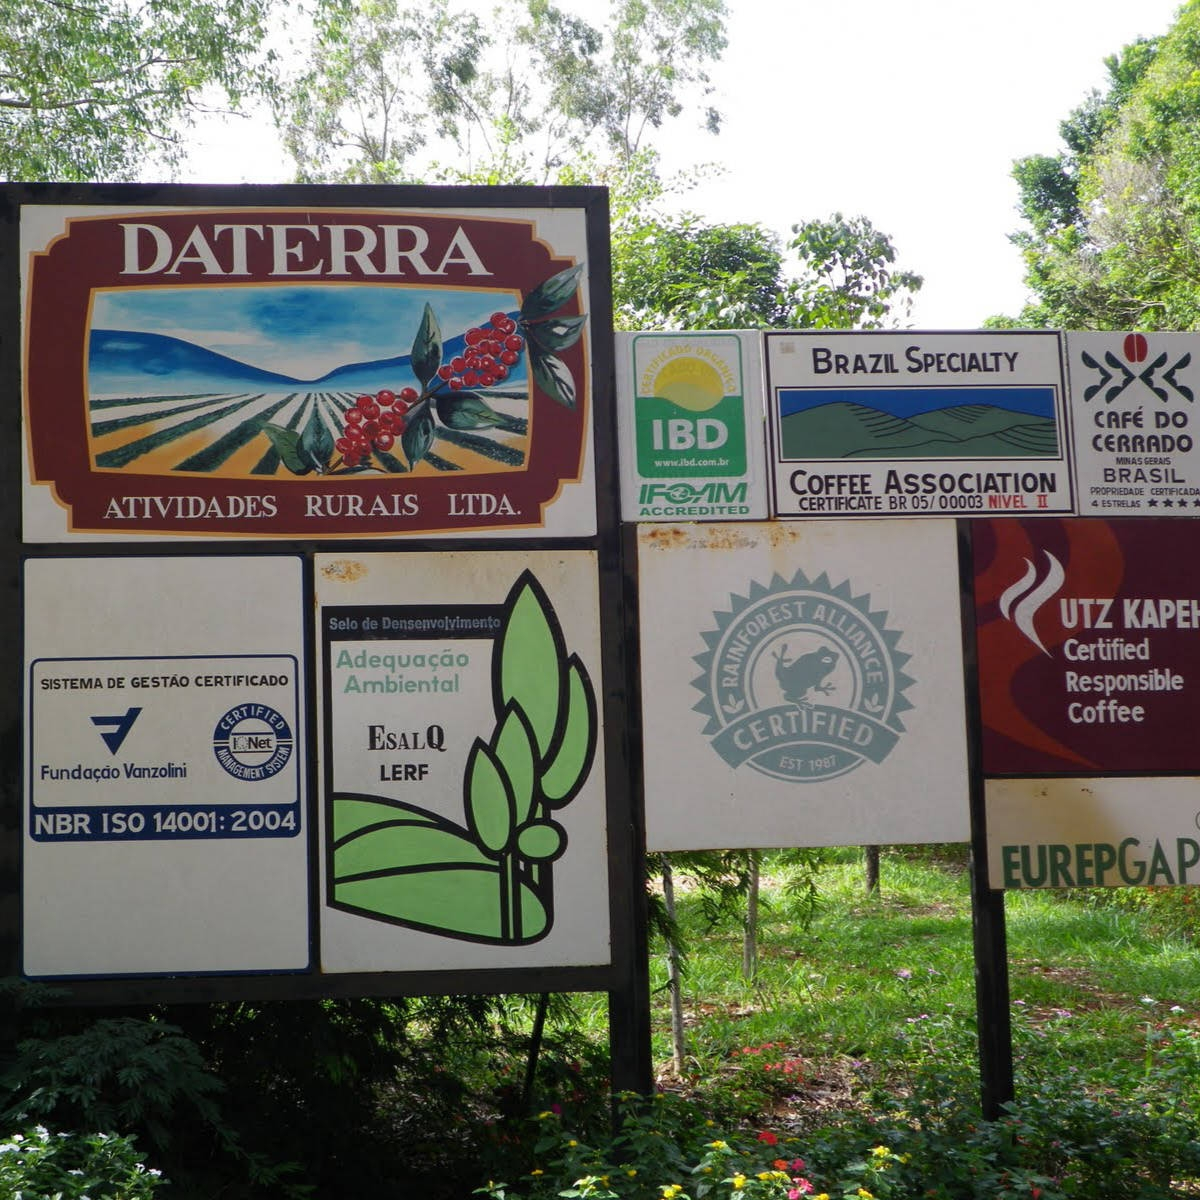 Daterra Masterpieces, Ciranda lot (story)